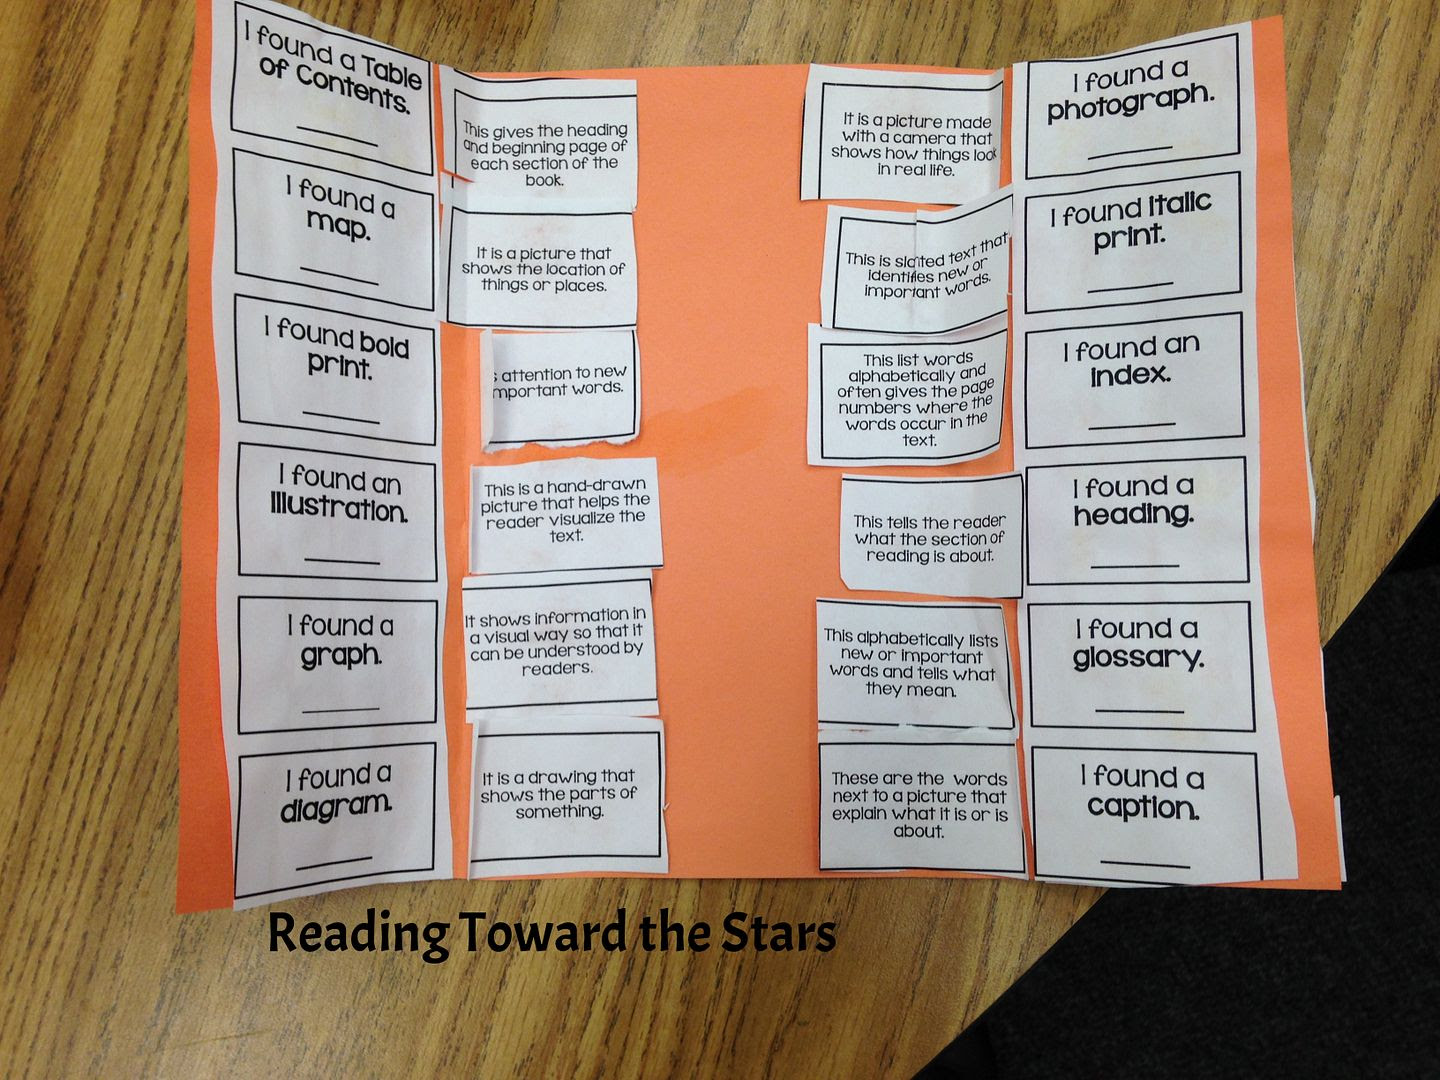 http://www.teacherspayteachers.com/Product/Nonfiction-Text-Features-Flipbook-481734